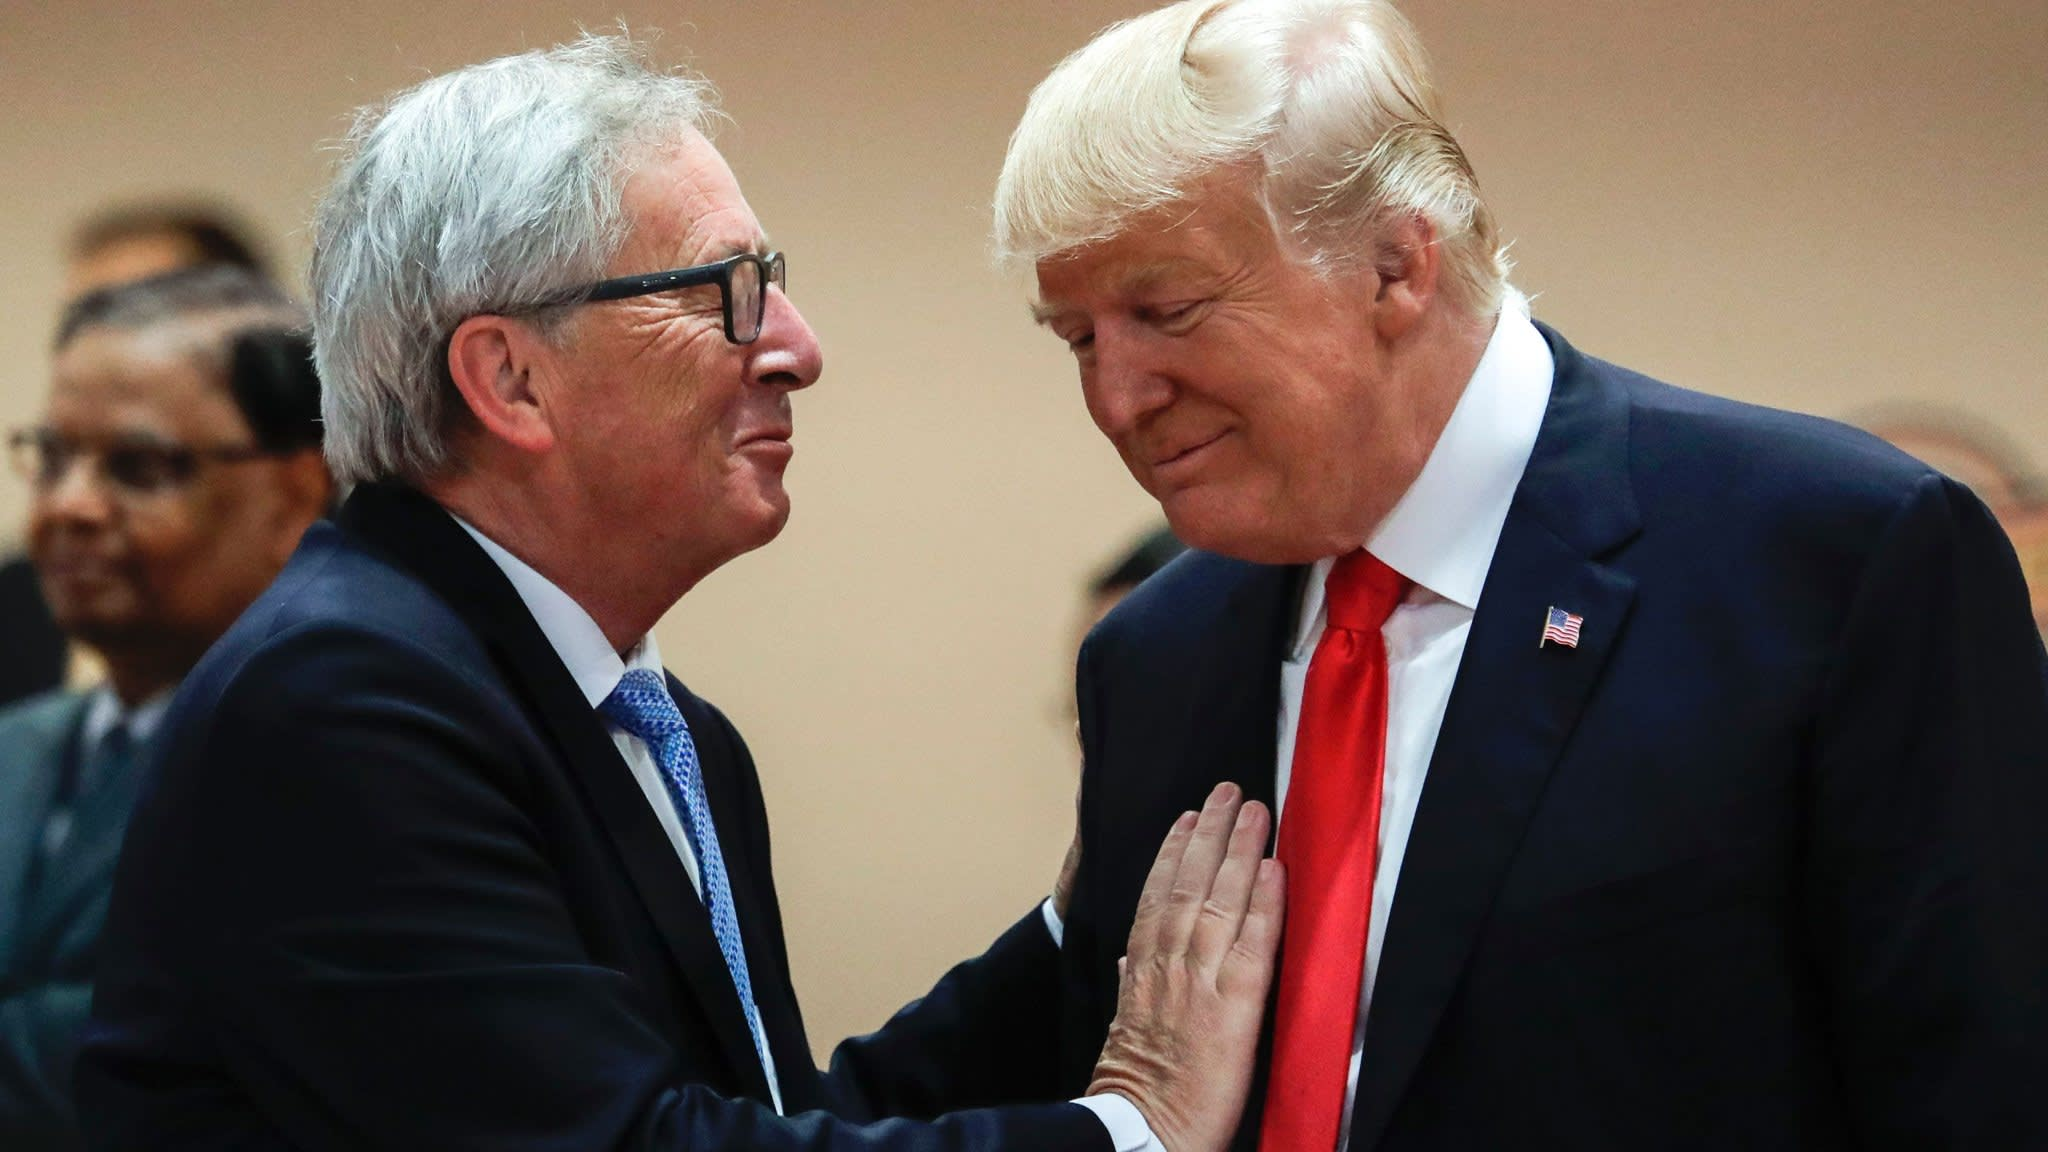 Trump attacks trade critics ahead of Juncker meeting